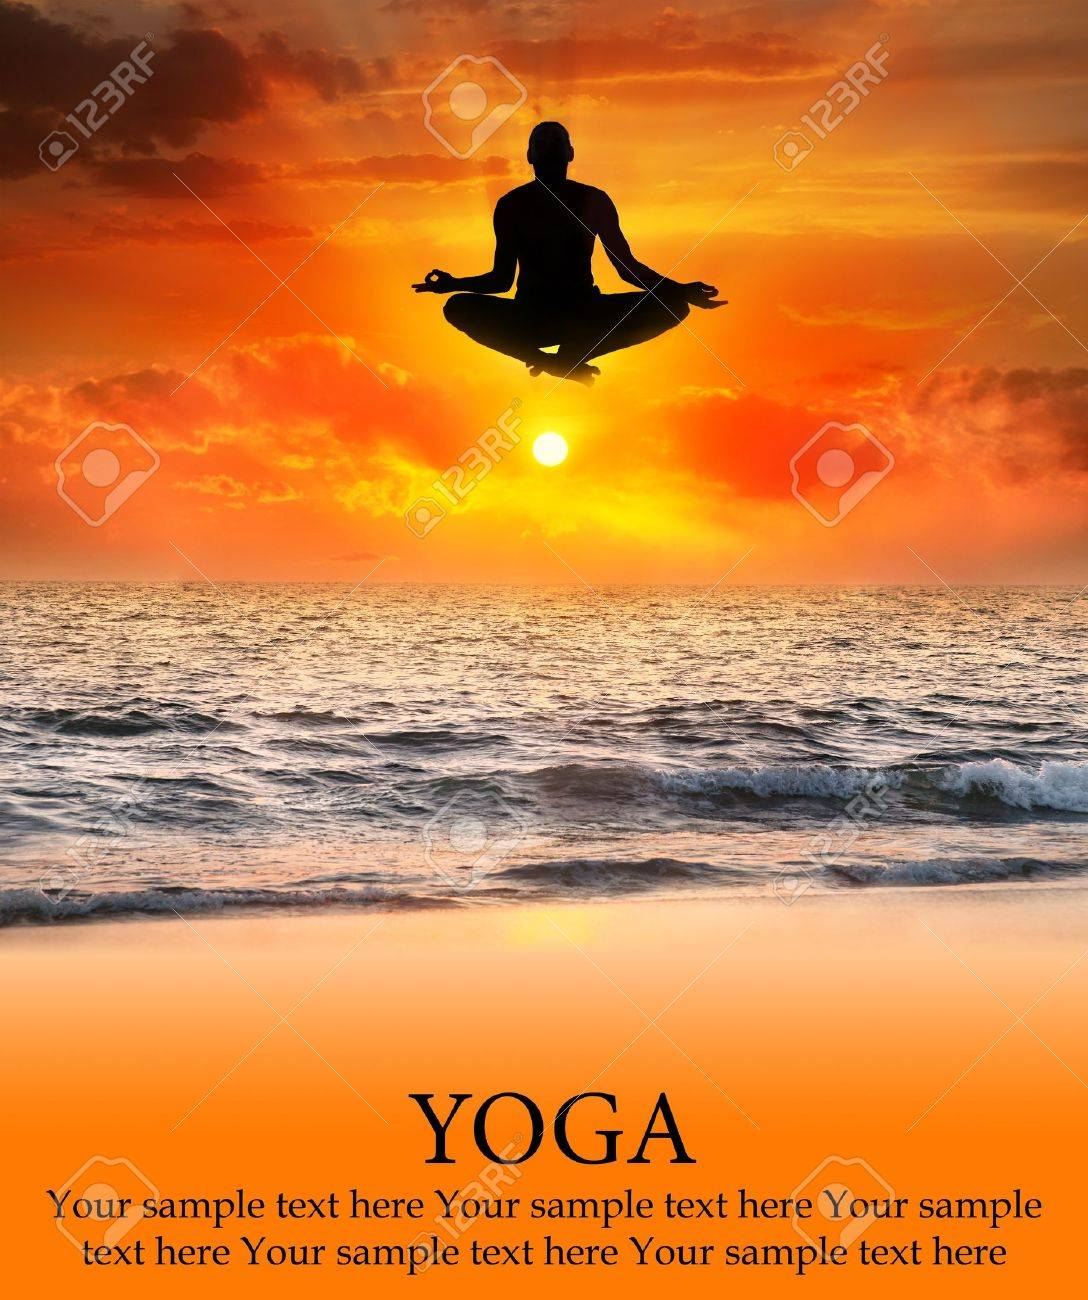 Padmasana lotus pose by  jumping Man silhouette at sunset and ocean background. Free space for your text. Represents concept of yoga Stock Photo - 10866905